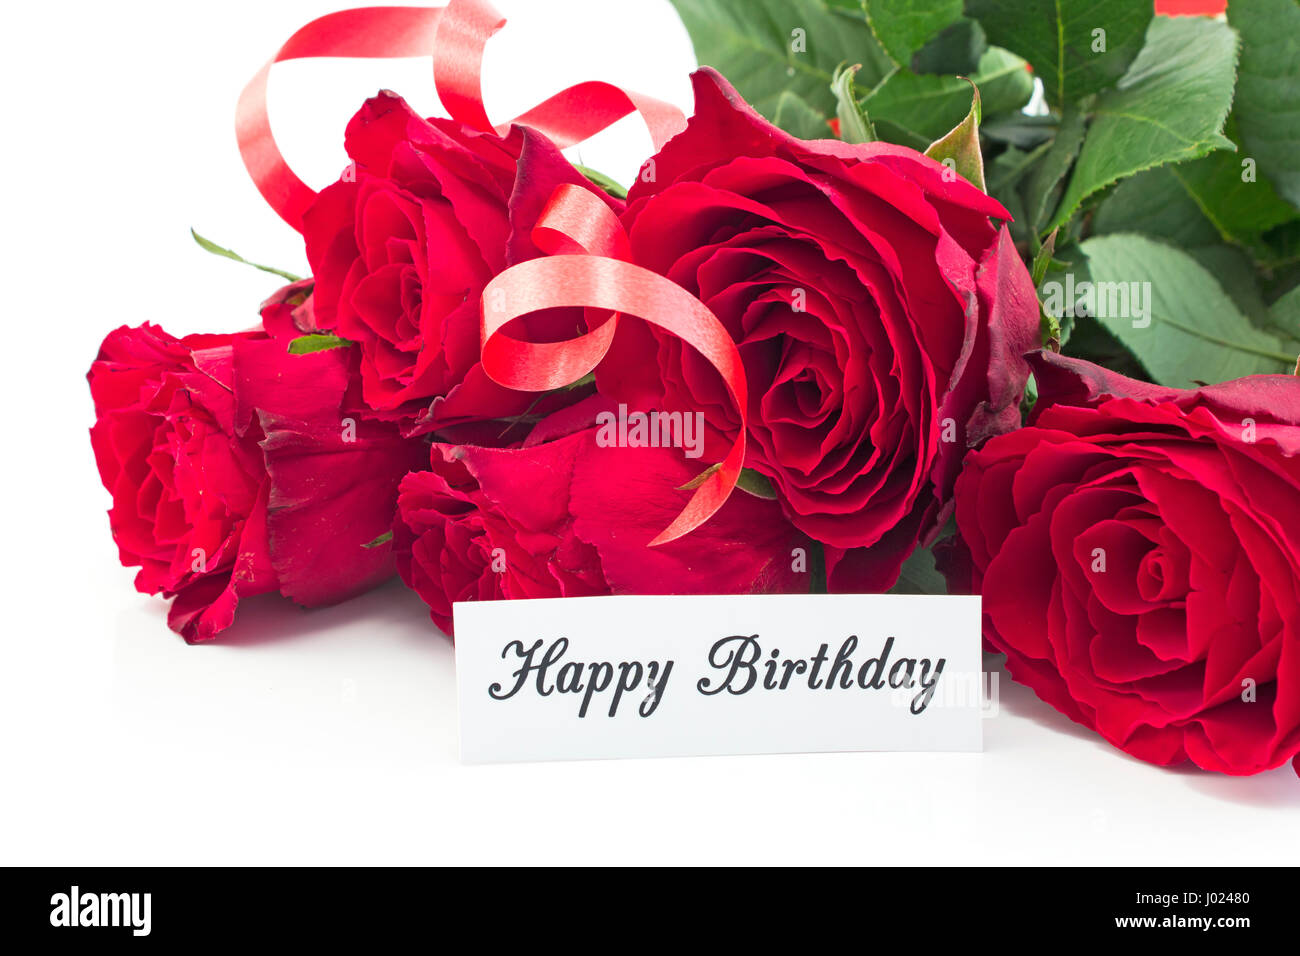 Happy Birthday Card With Bouquet Of Red Roses On White Background